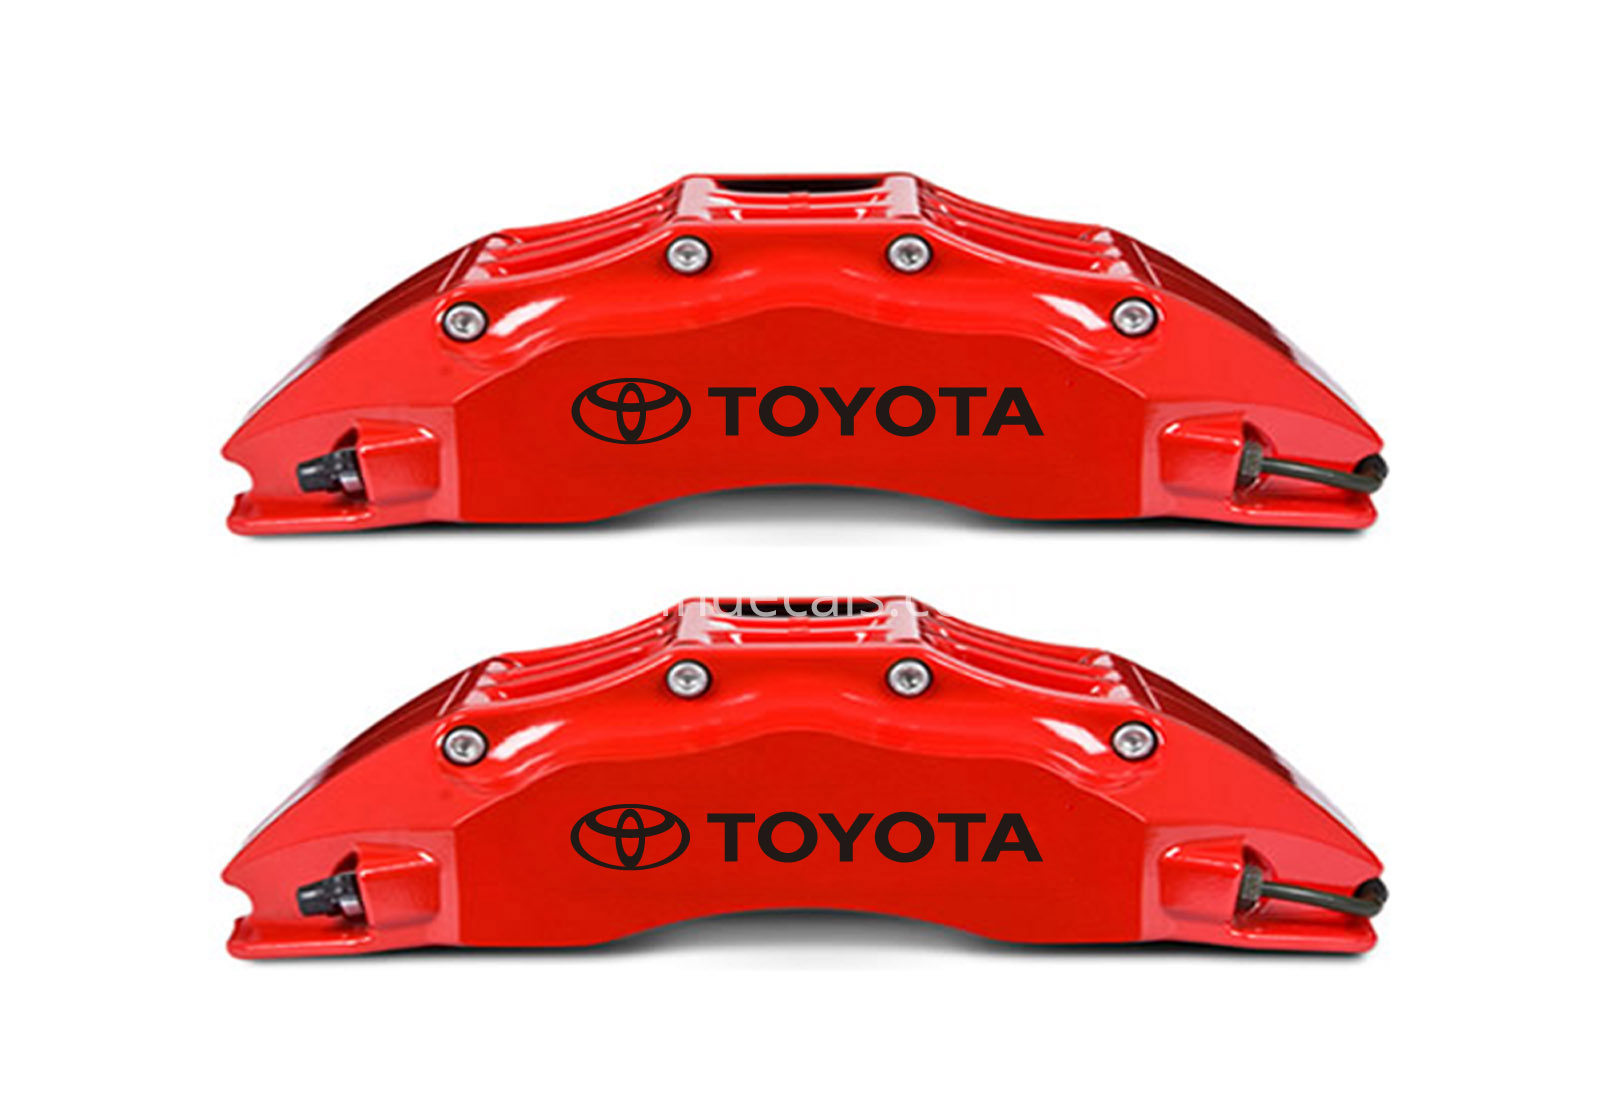 6 x Toyota Stickers for Brakes - Black